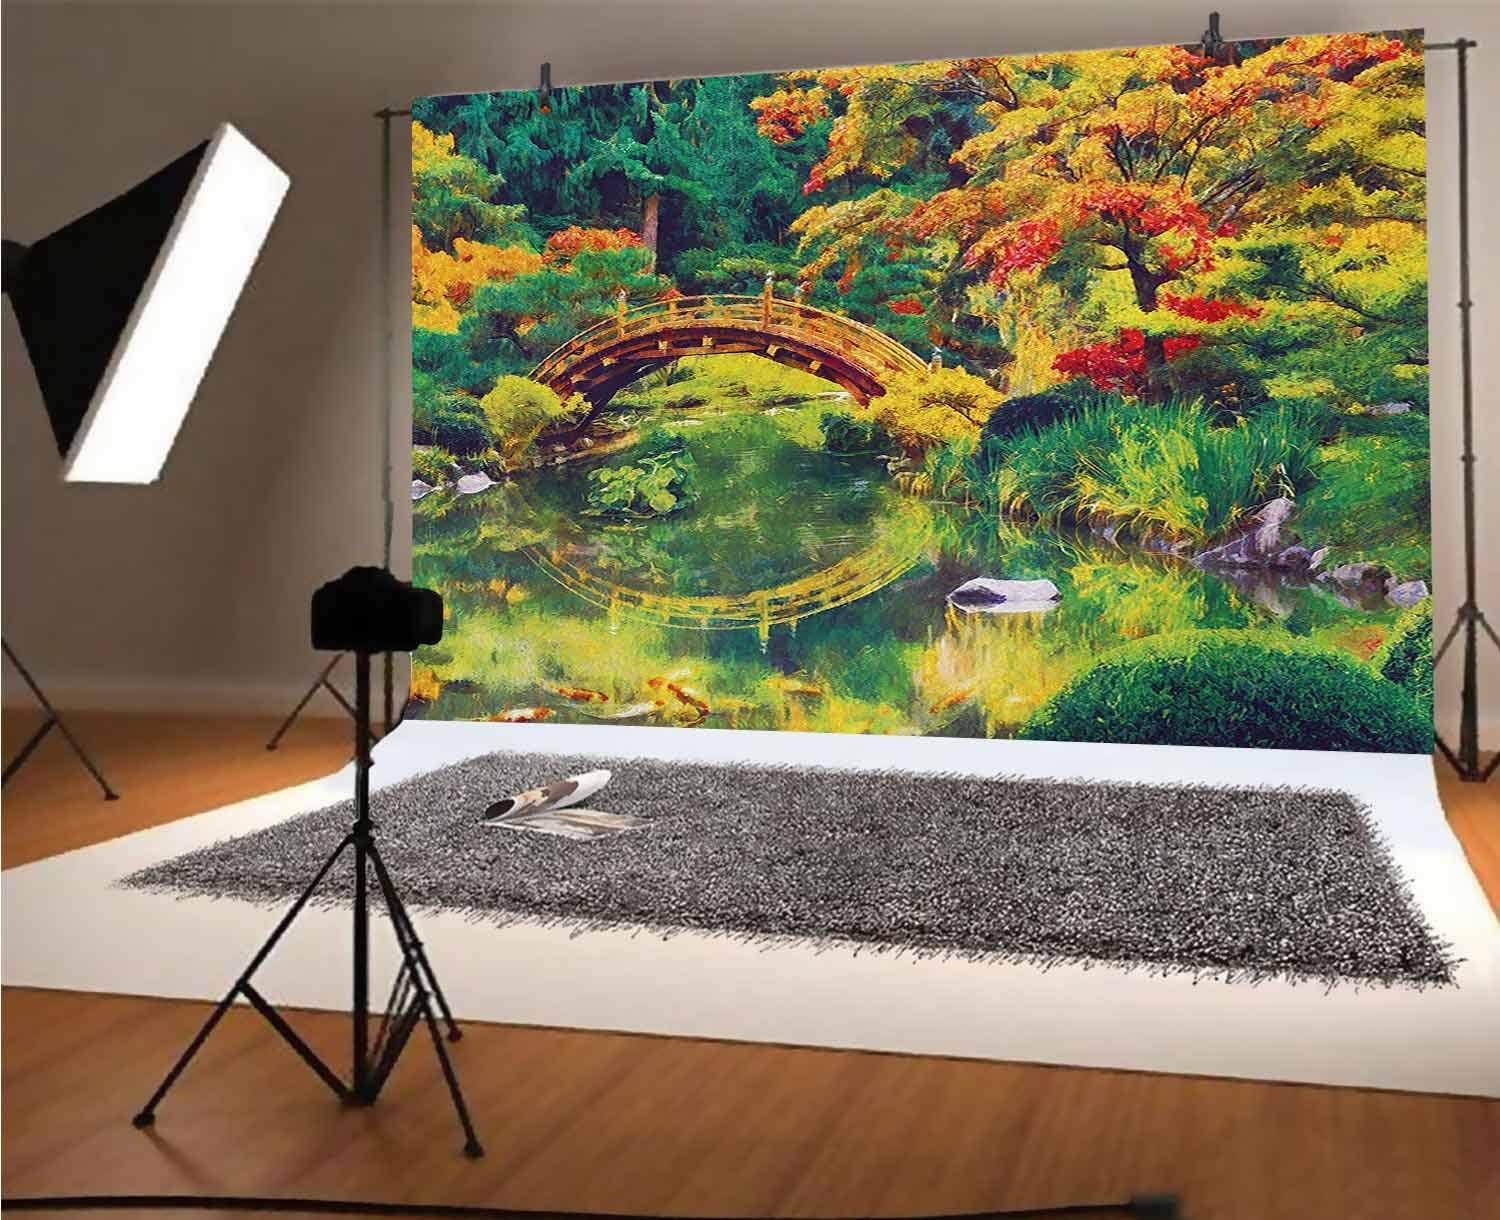 Country 10x8 FT Vinyl Photography Backdrop,Fairy Image of a Japanese Garden with an Old Ancient Bridge The Lake Nature Print Background for Photo Backdrop Baby Newborn Photo Studio Props